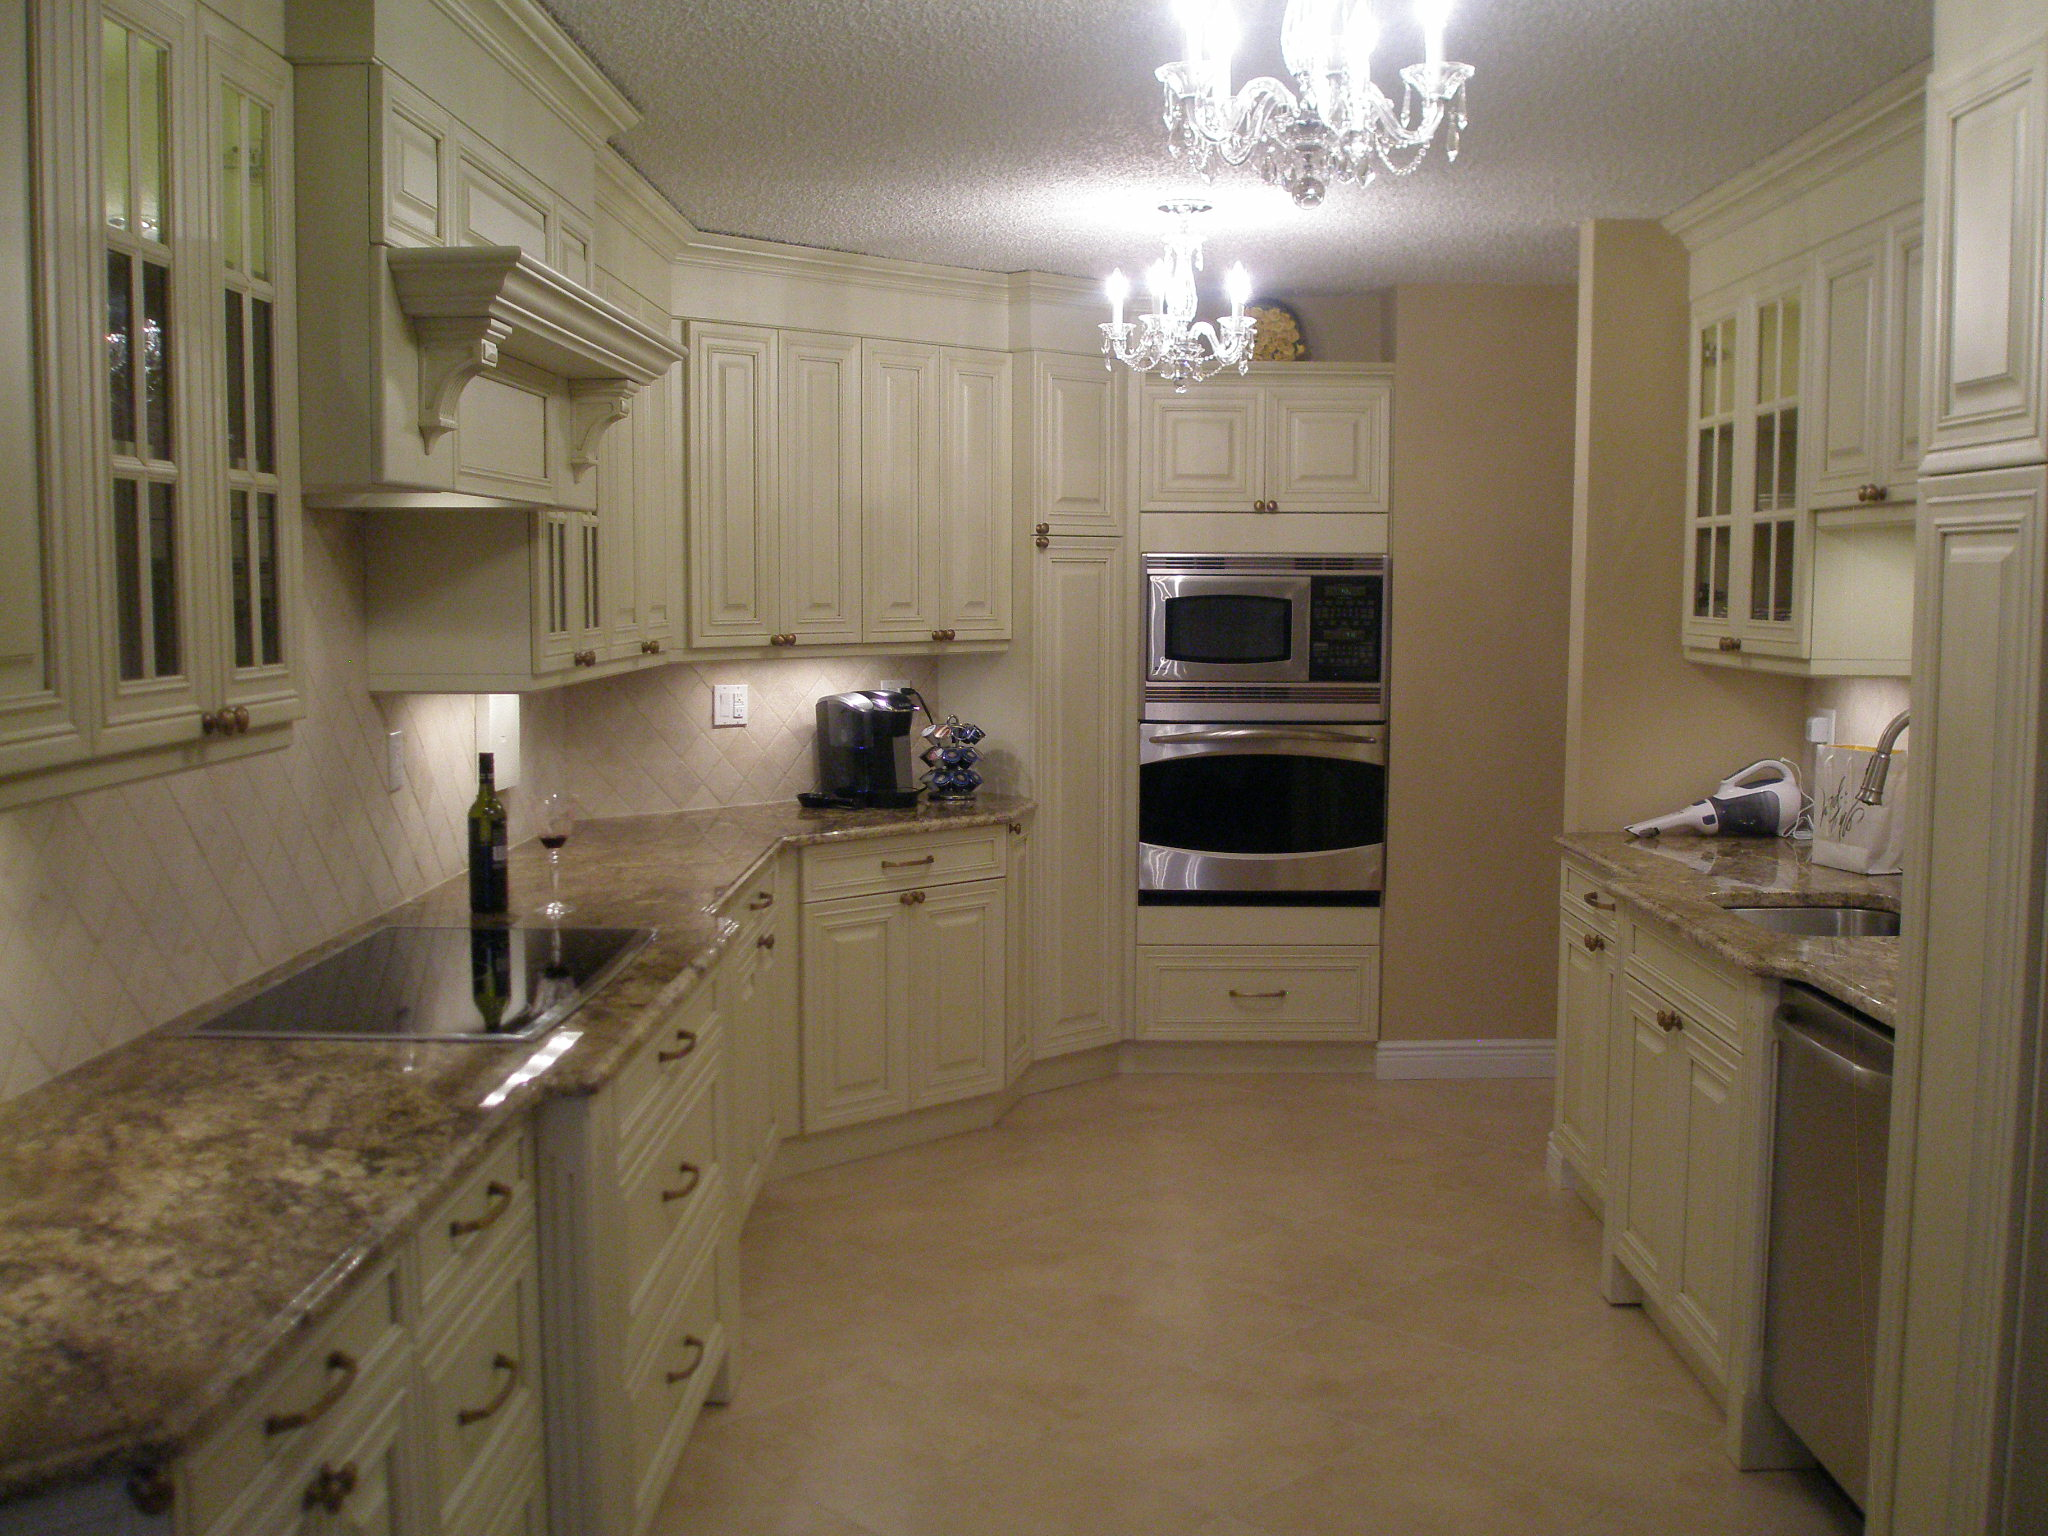 kitchen pics (201)